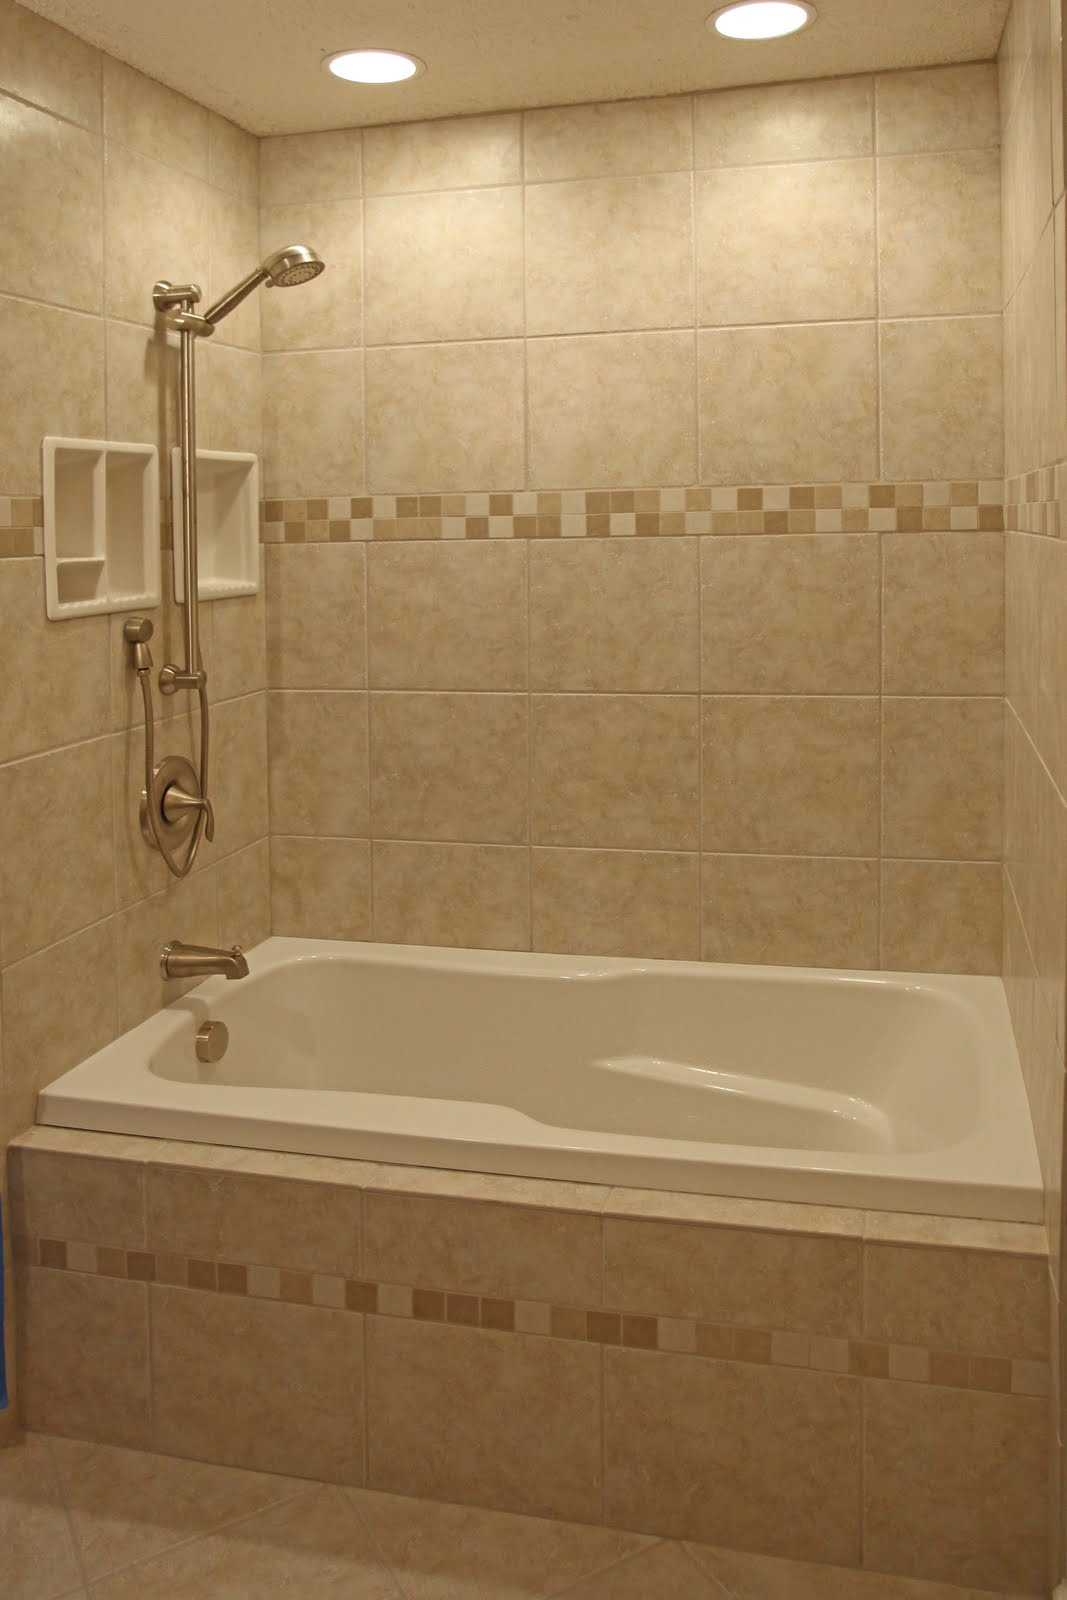 bathroom remodeling design ideas tile shower niches ForBath Tile Design Ideas Photos